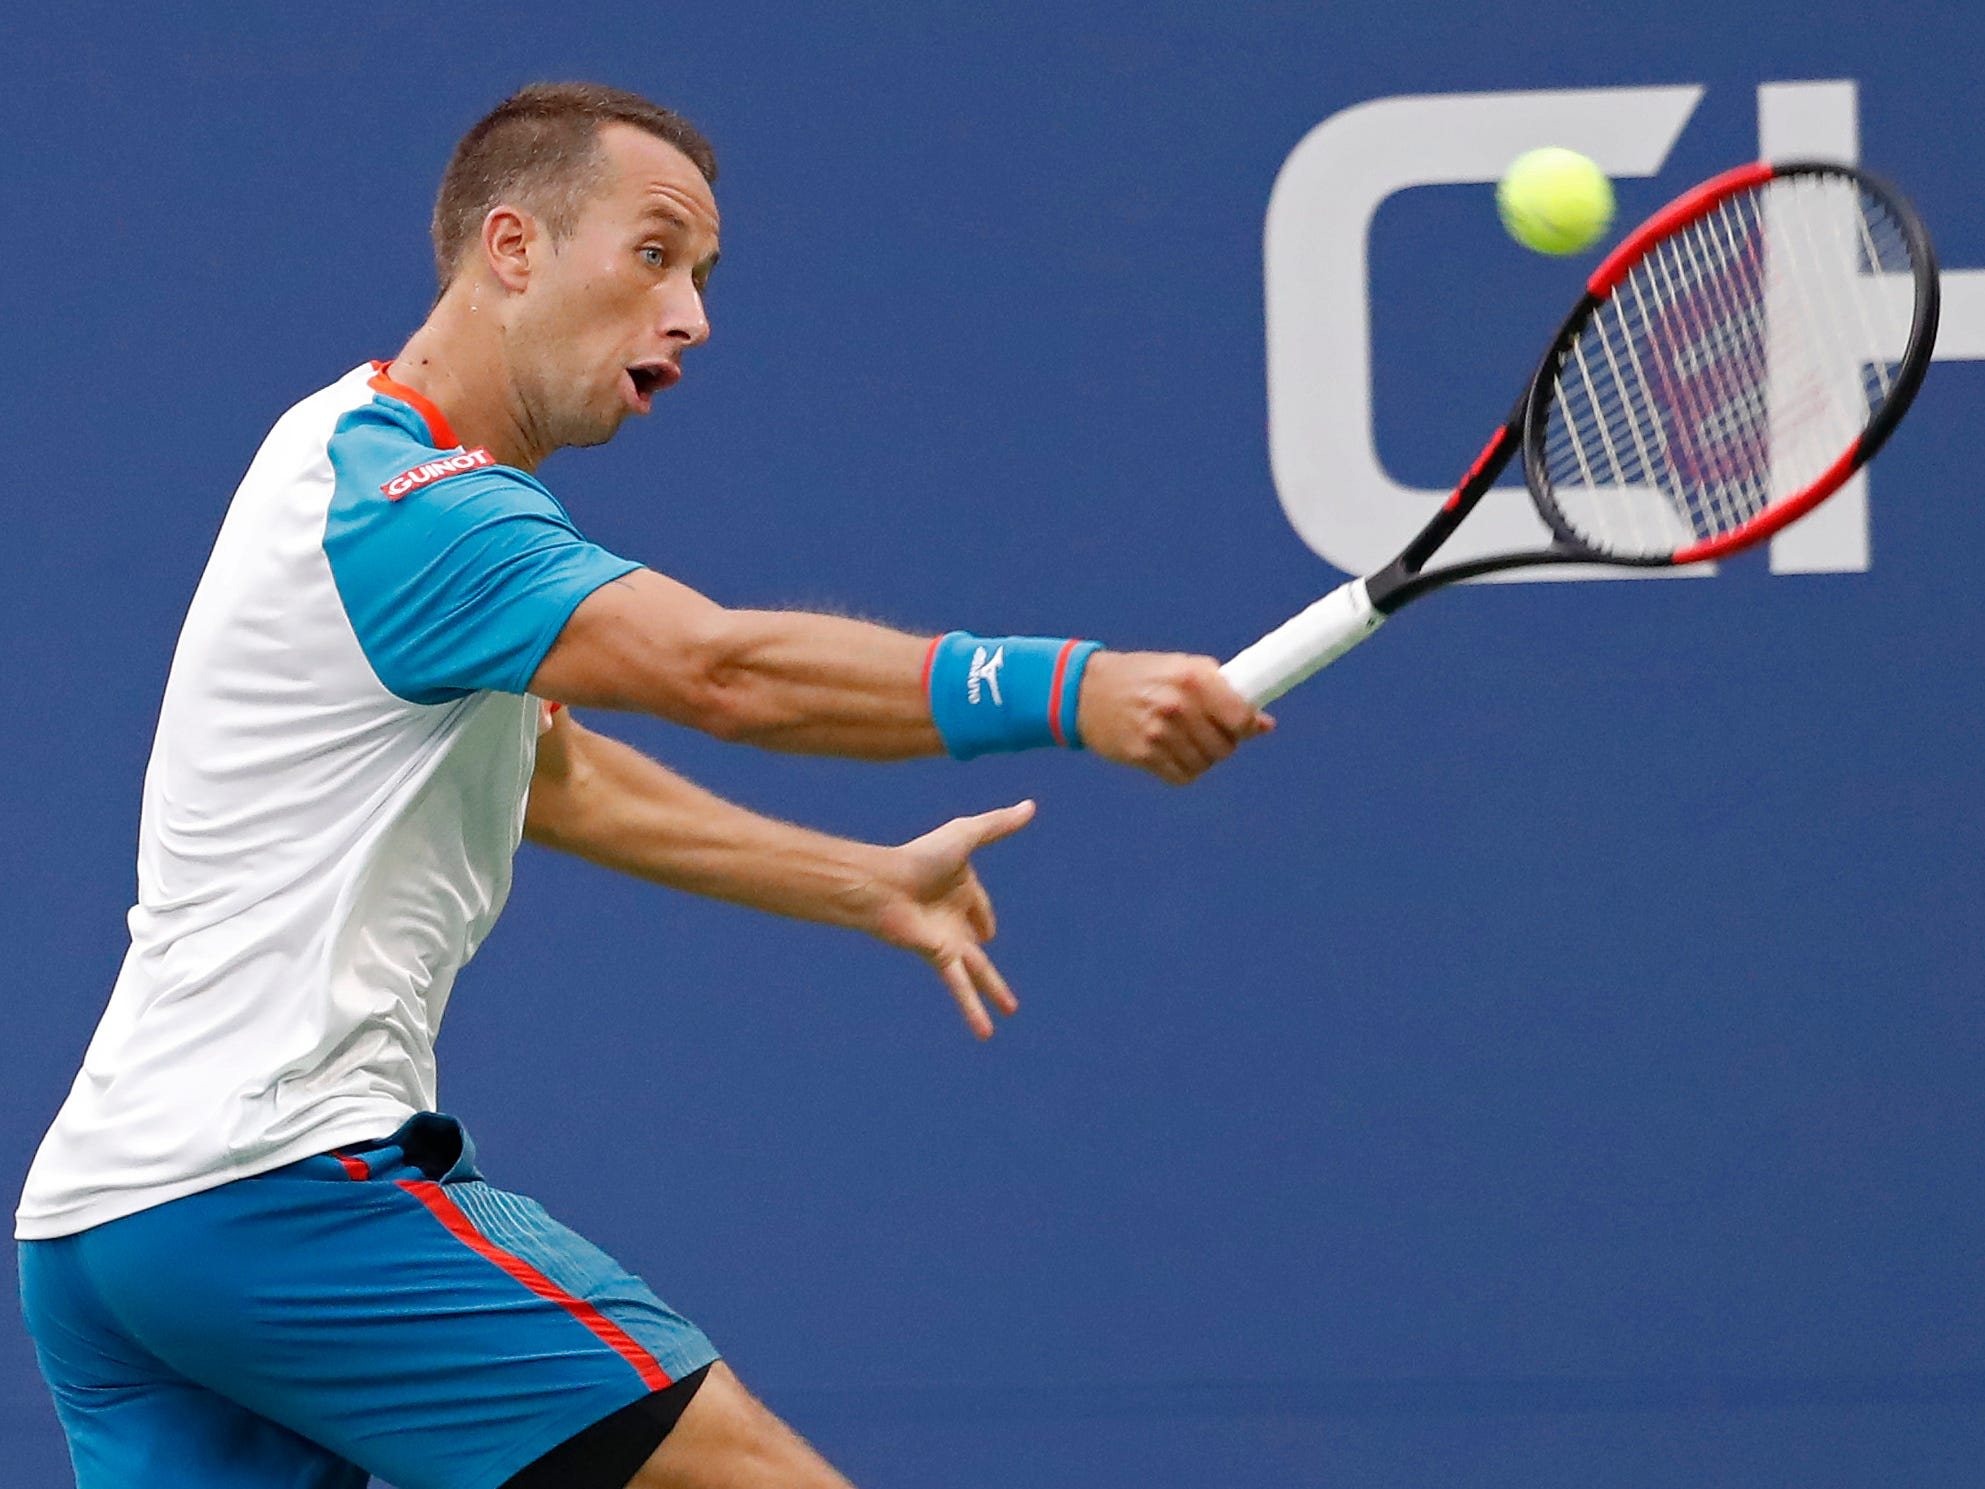 Philipp Kohlschreiber of Germany upset Alexander Zverev of Germany.